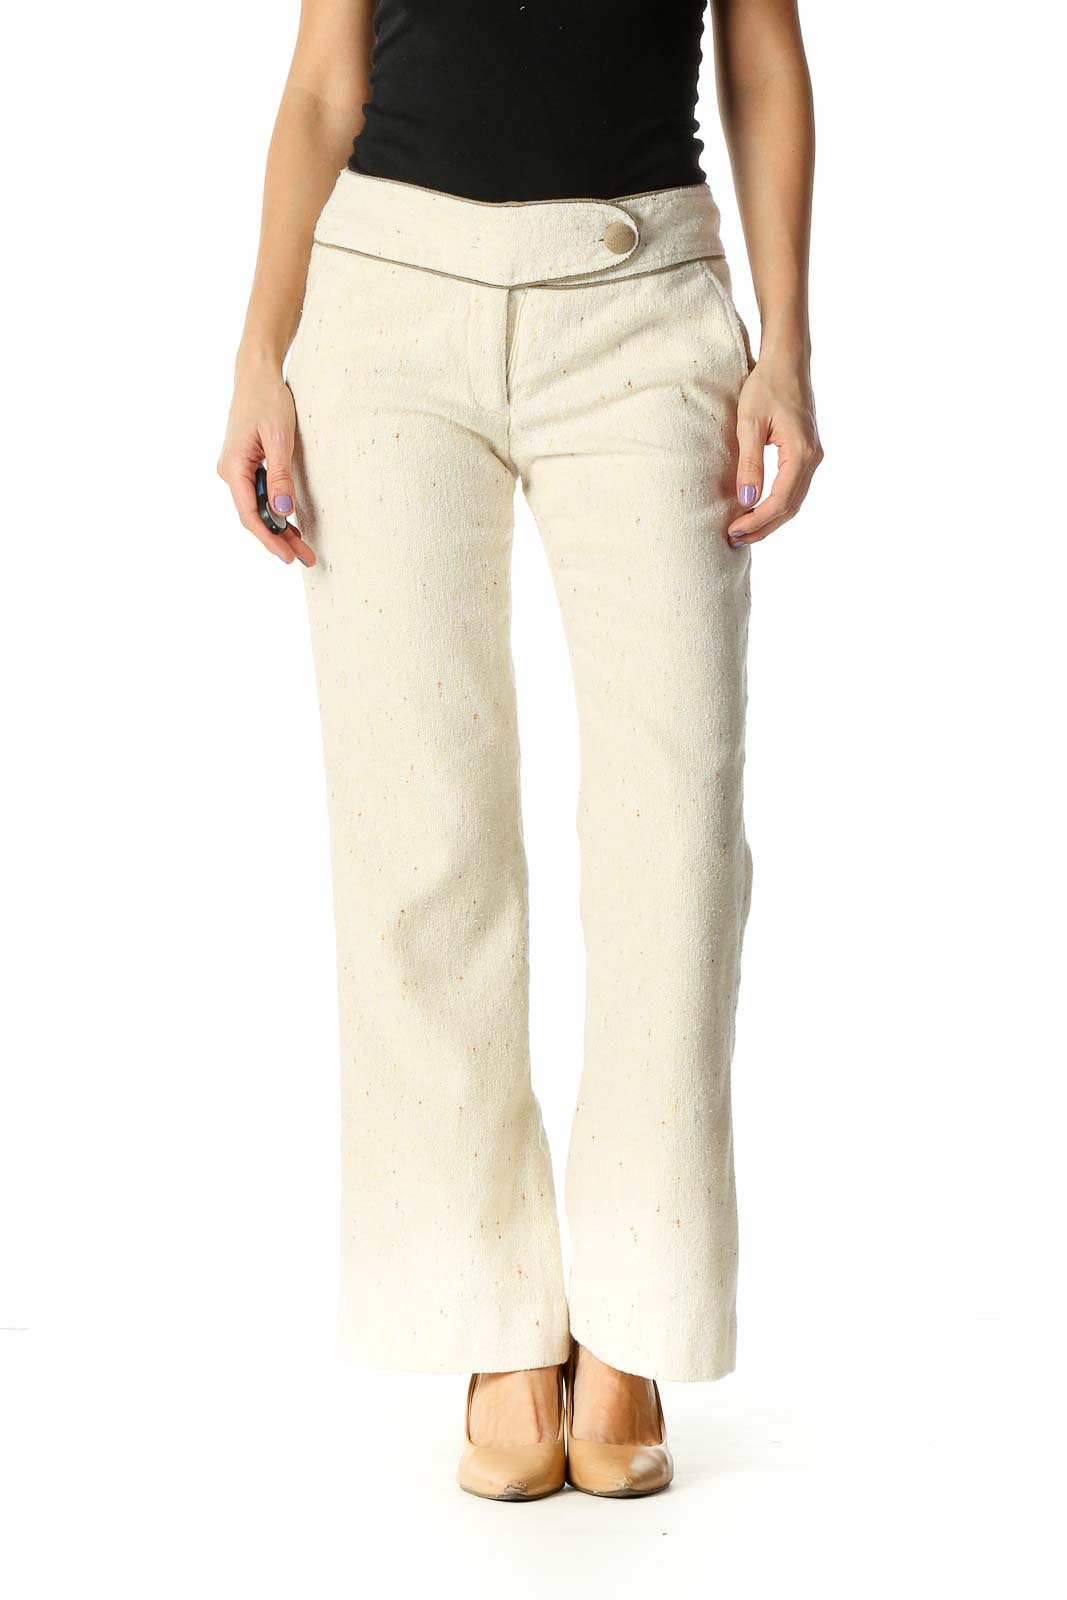 Beige Knit Casual Trousers Front